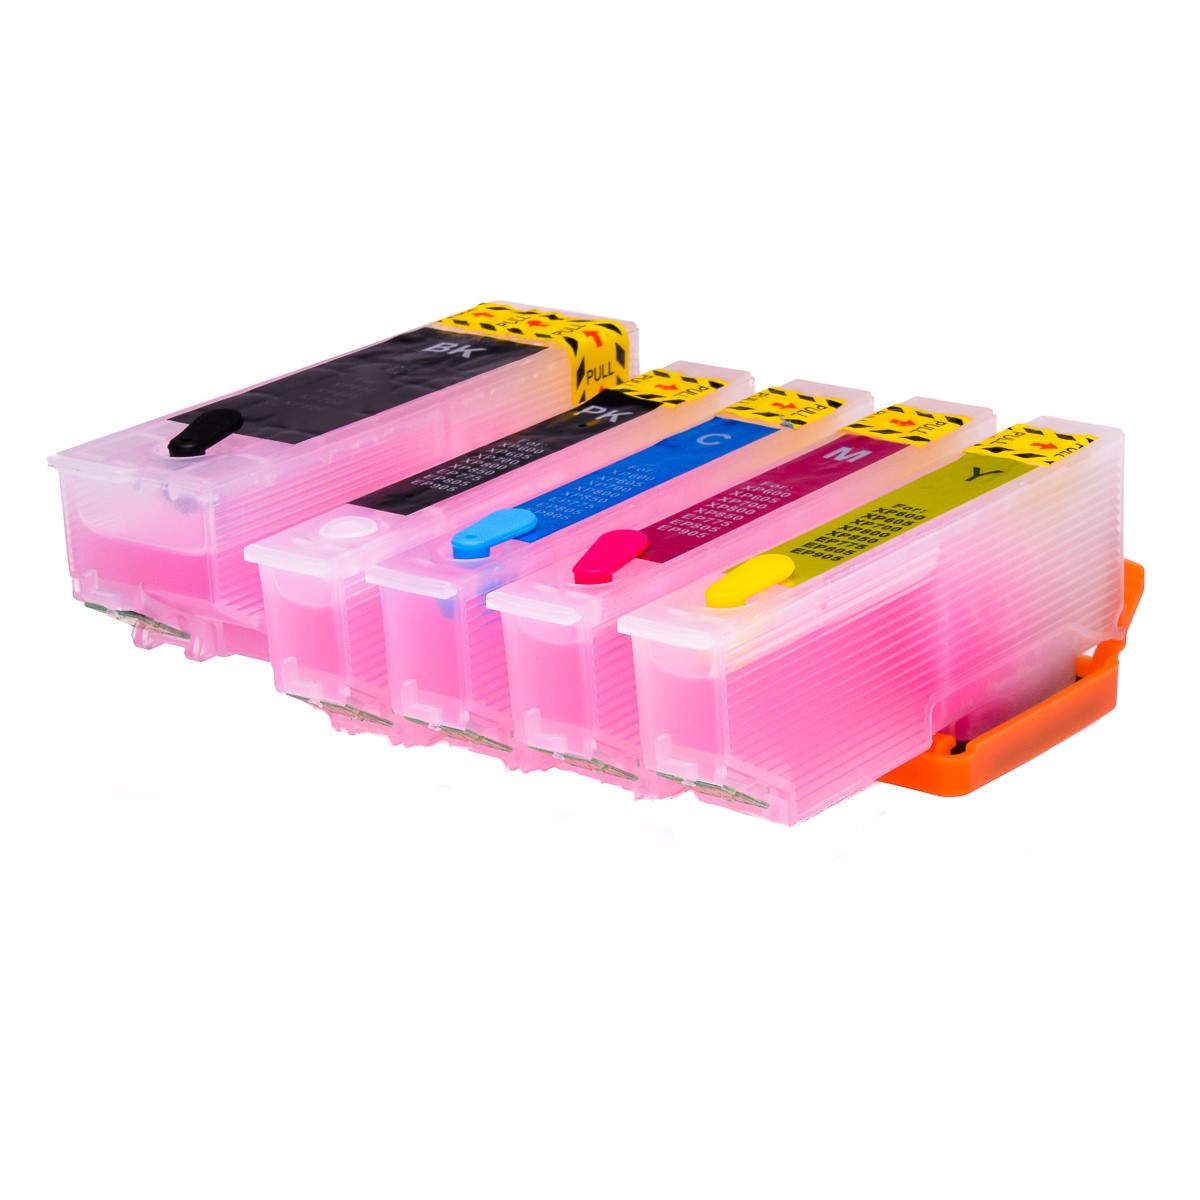 Multipack printhead cleaning cartridge for Epson XP-645 printer